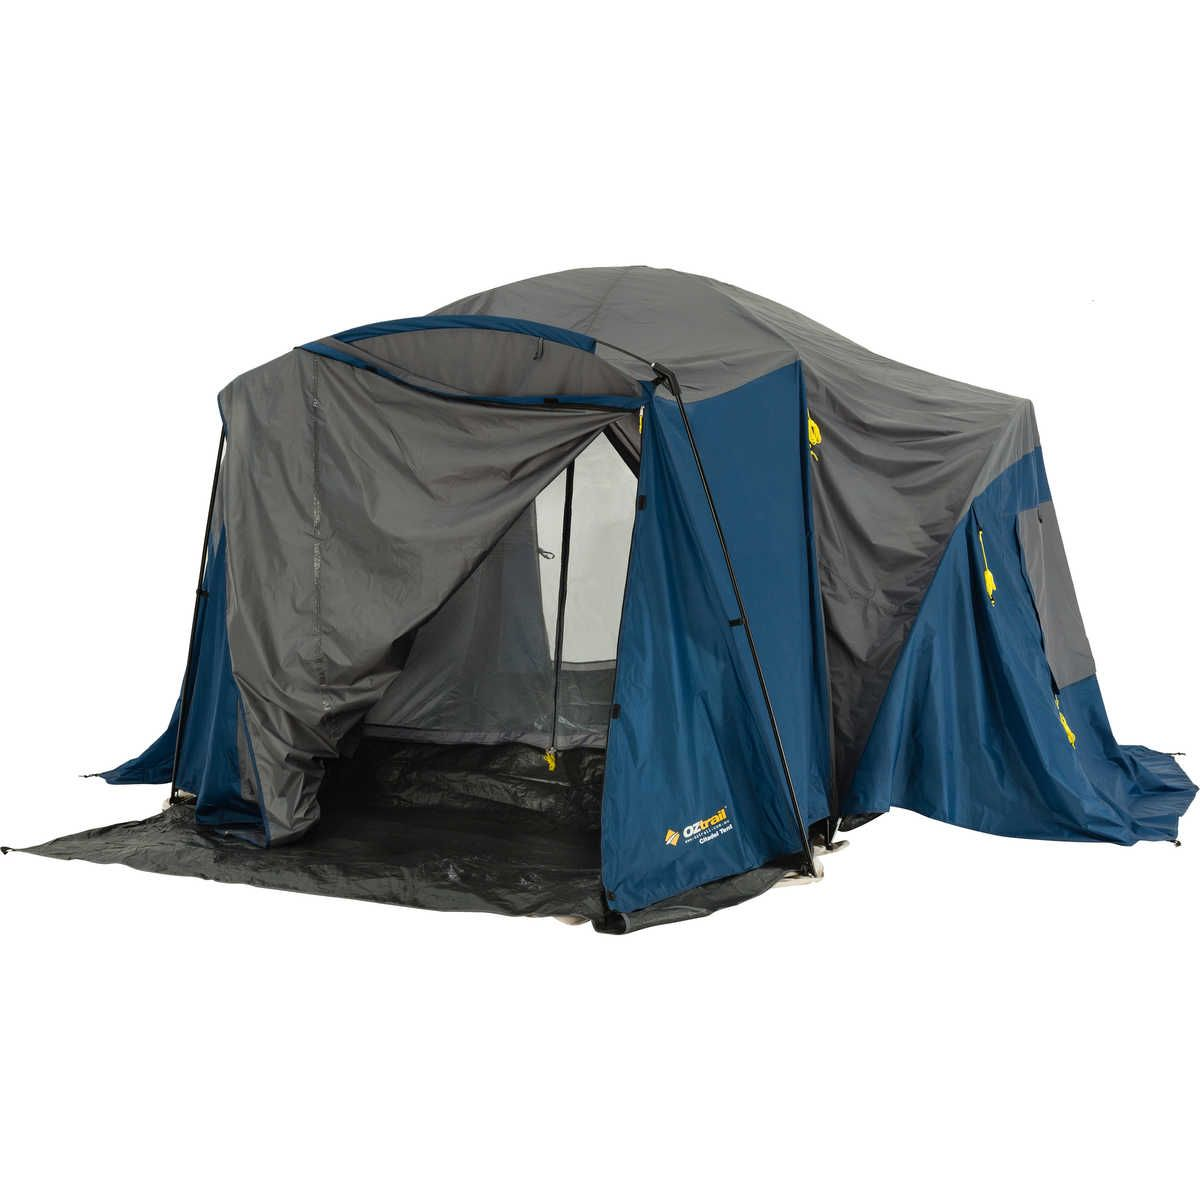 Tents  sc 1 st  Pinterest & The OZtrail Citadel Tent is the perfect size for large camping ...